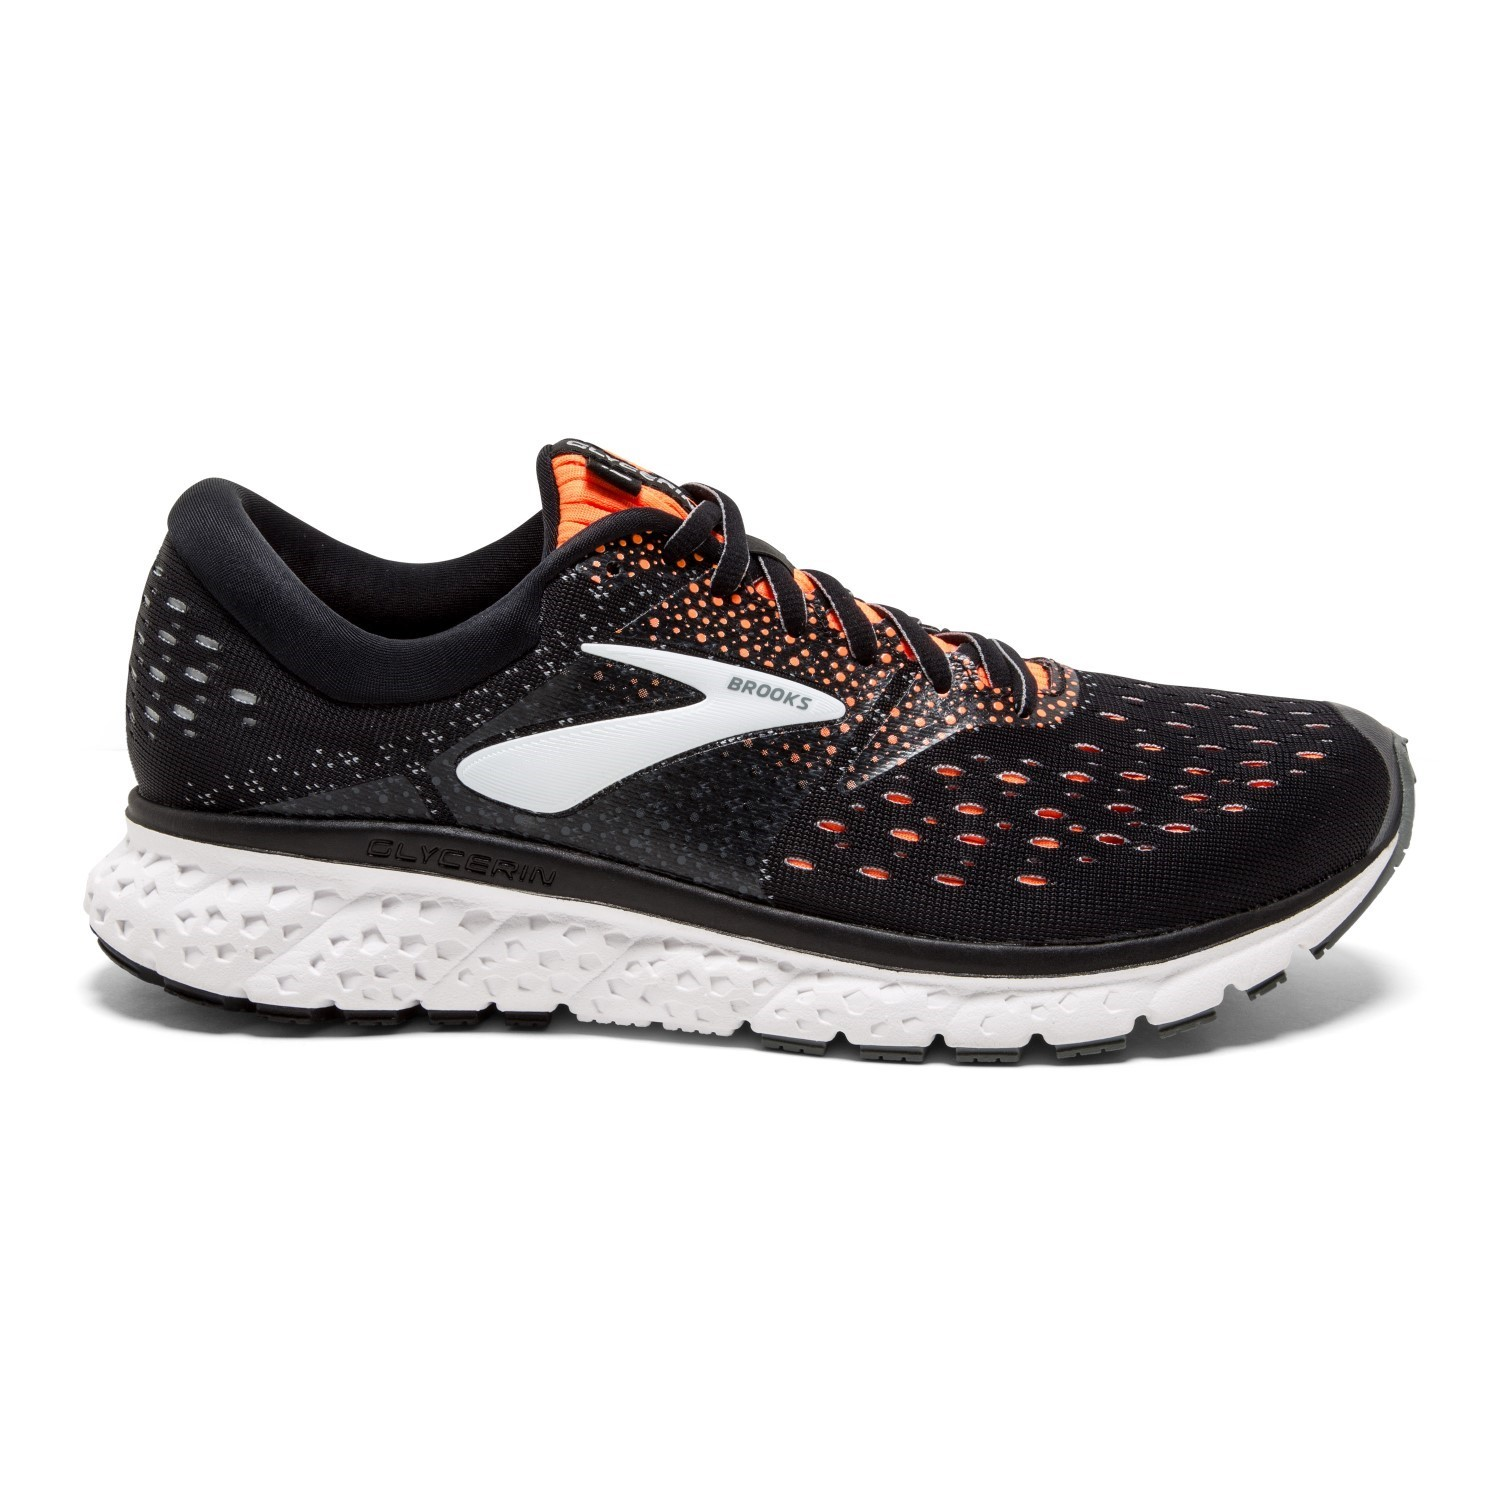 a76c848bcf2 Brooks Glycerin 16 - Mens Running Shoes - Black Orange Grey